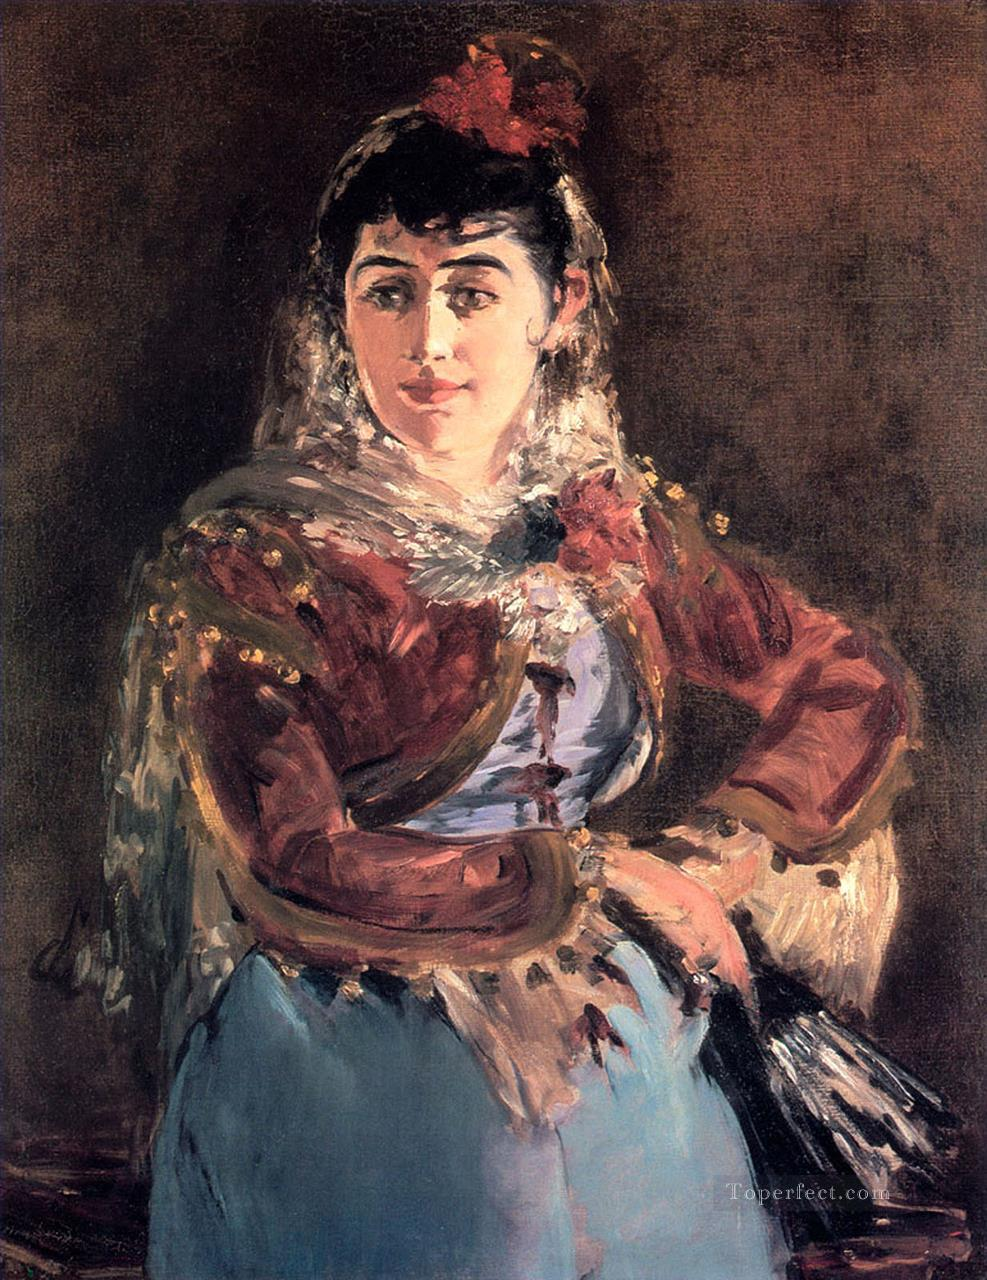 4 Portrait of Emilie Ambre in the role of Carmen Realism Impressionism Edouard Manet